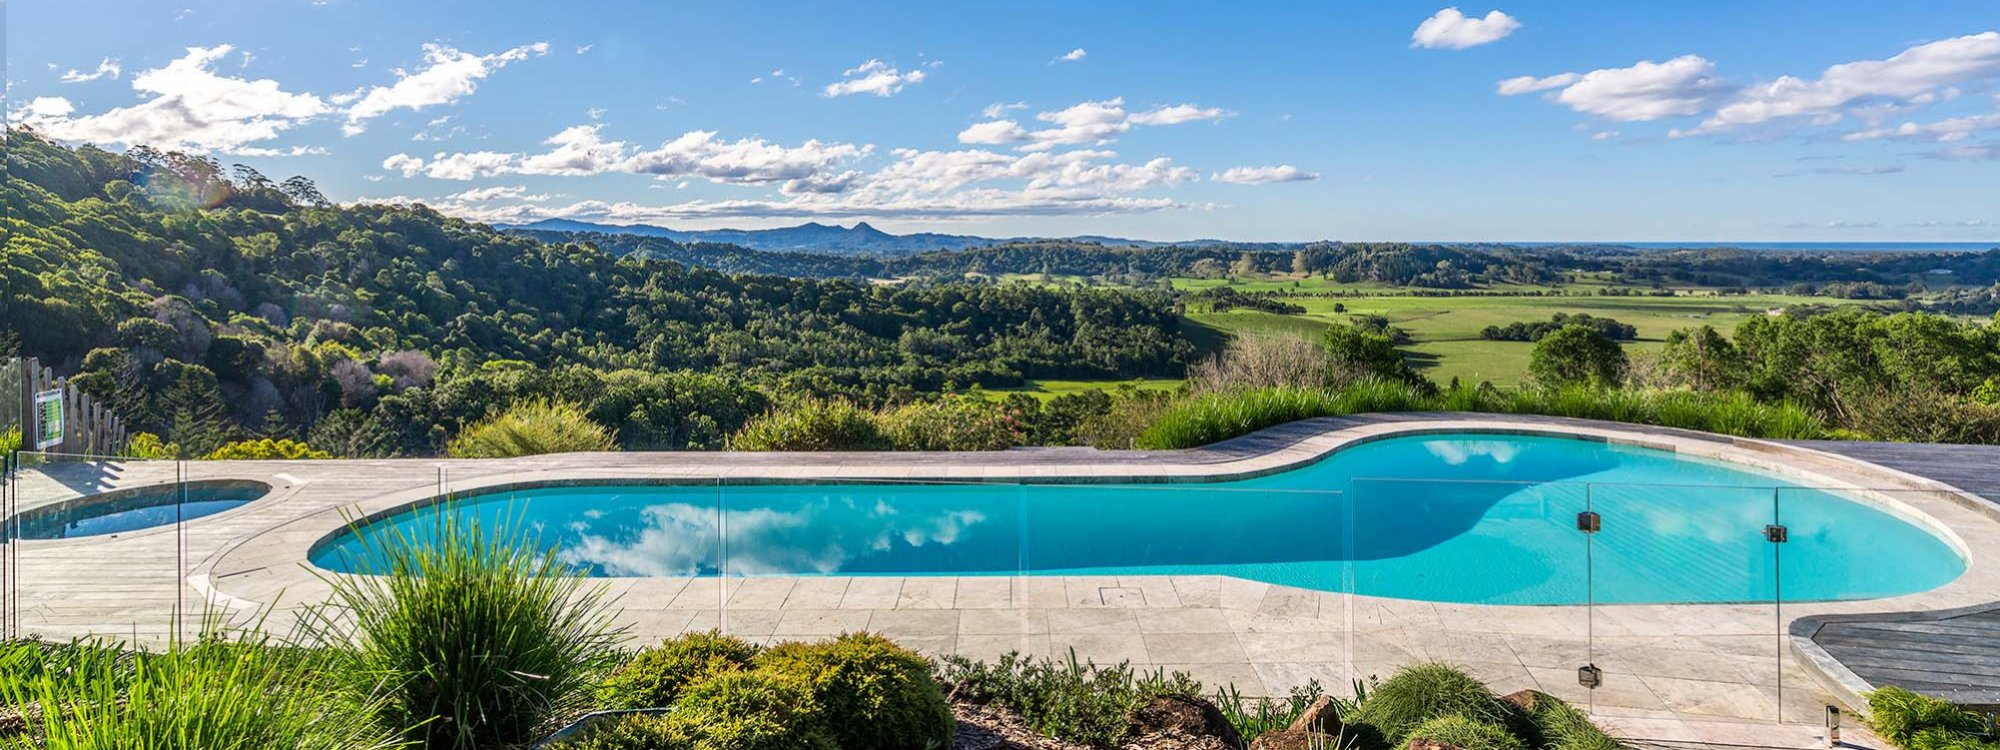 Summer Breeze - Byron Bay - Pool and View c